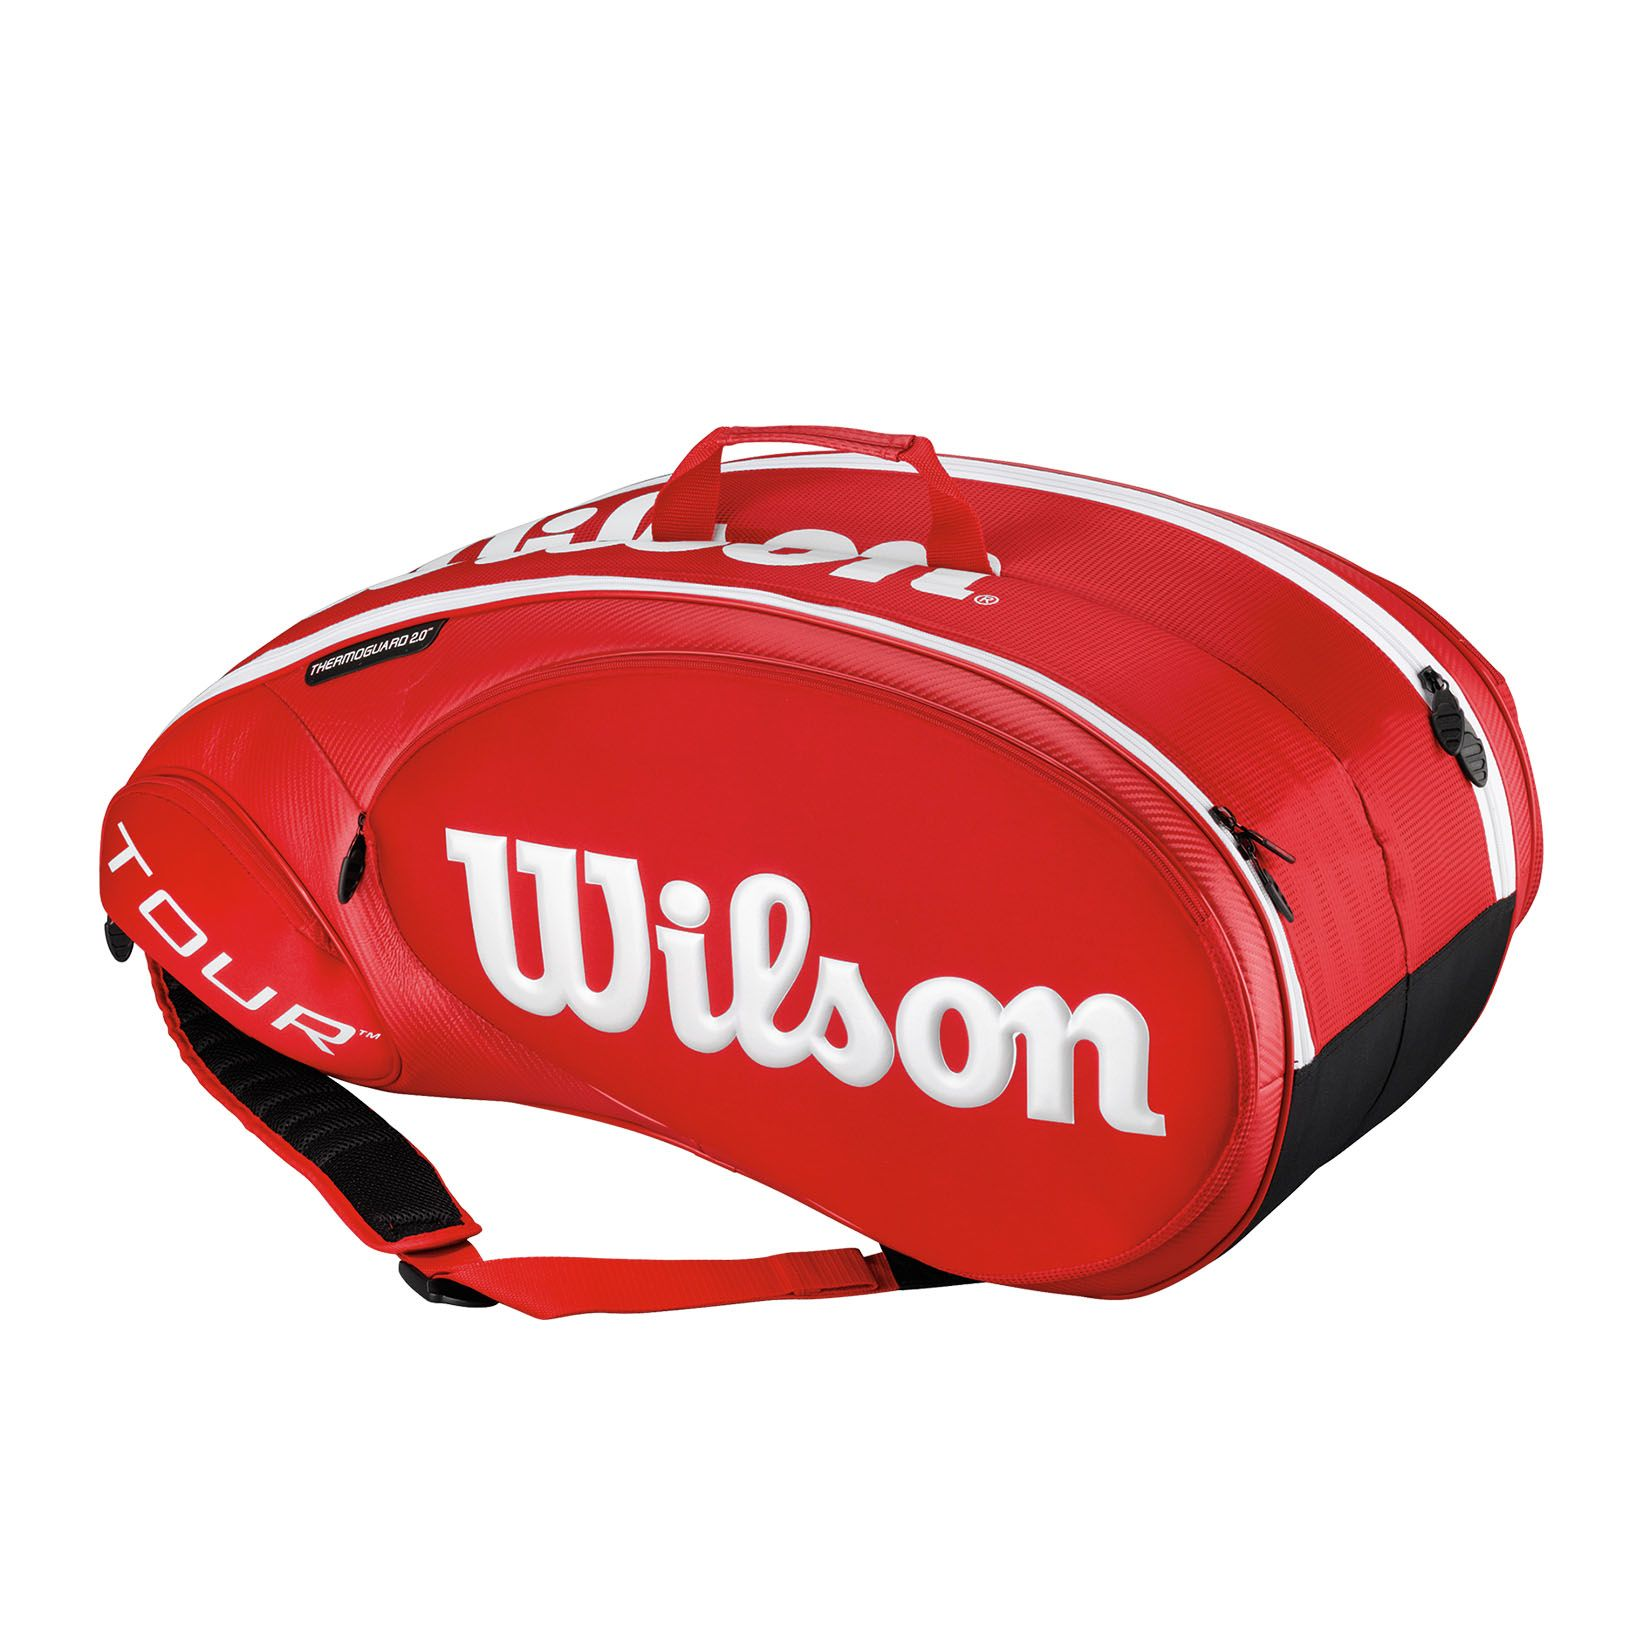 Wilson Tour 2.0 Bag 9 Racket Red